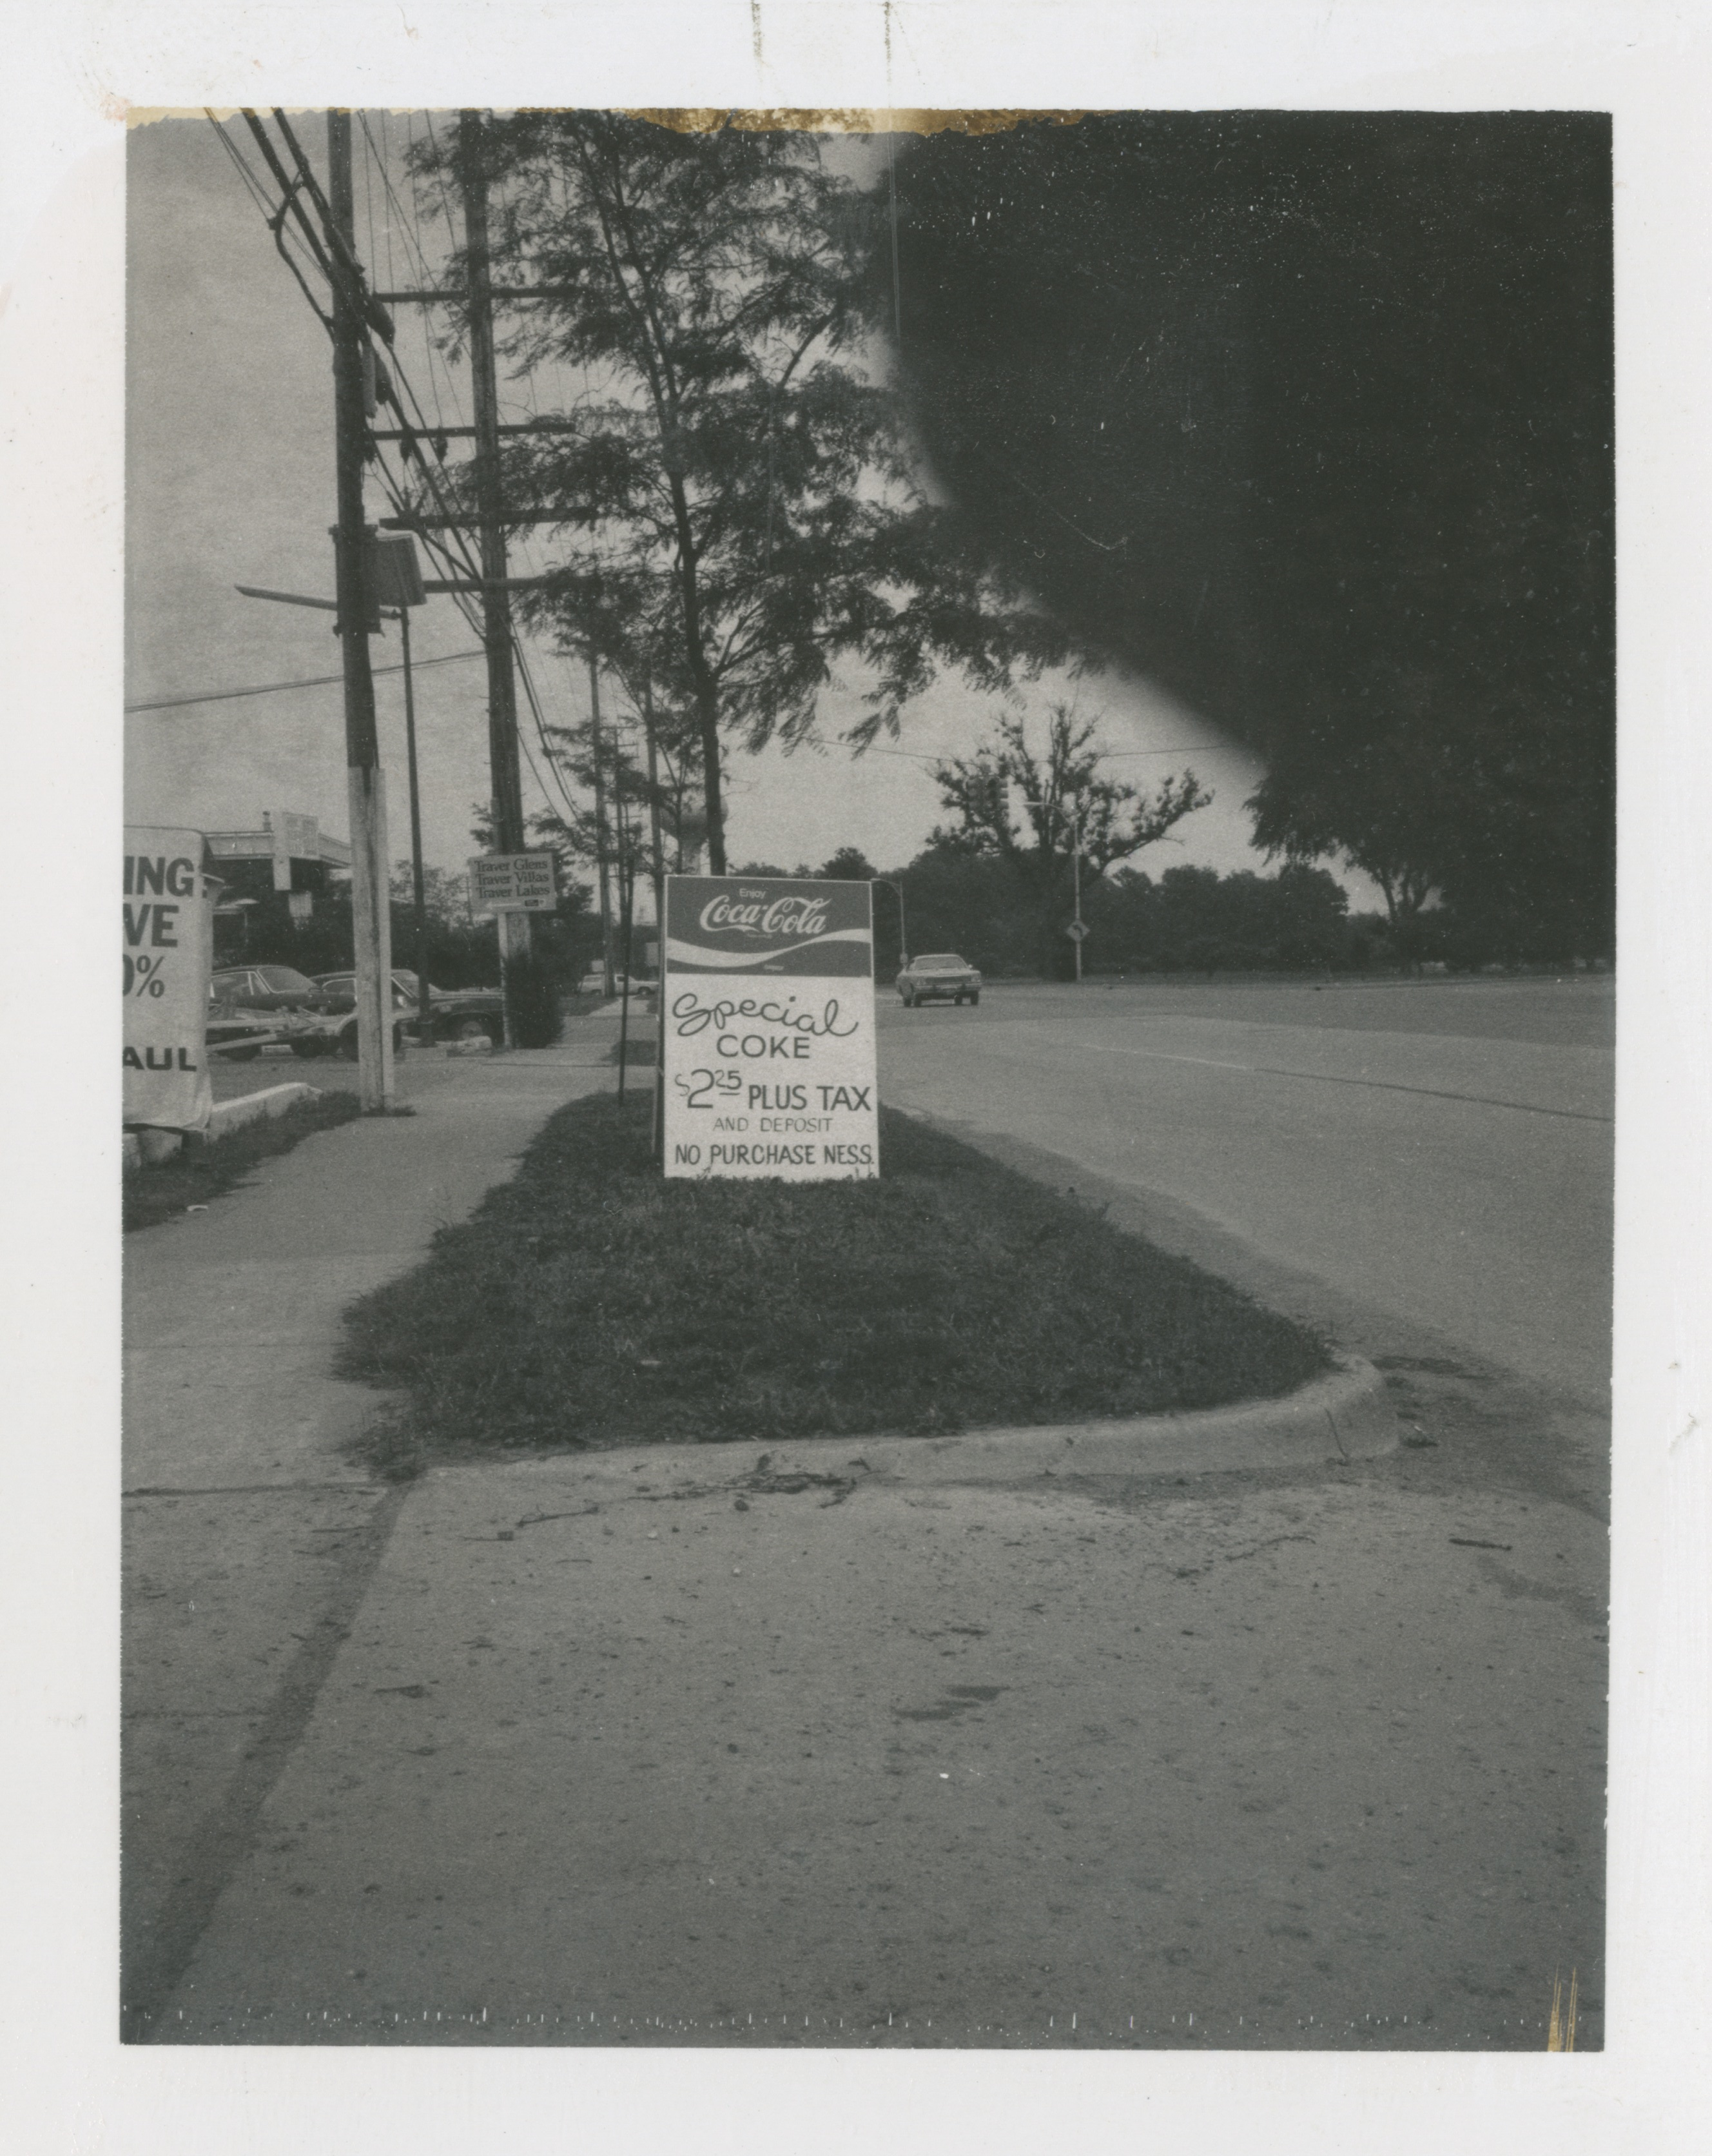 North Campus Total Service, 1973 image